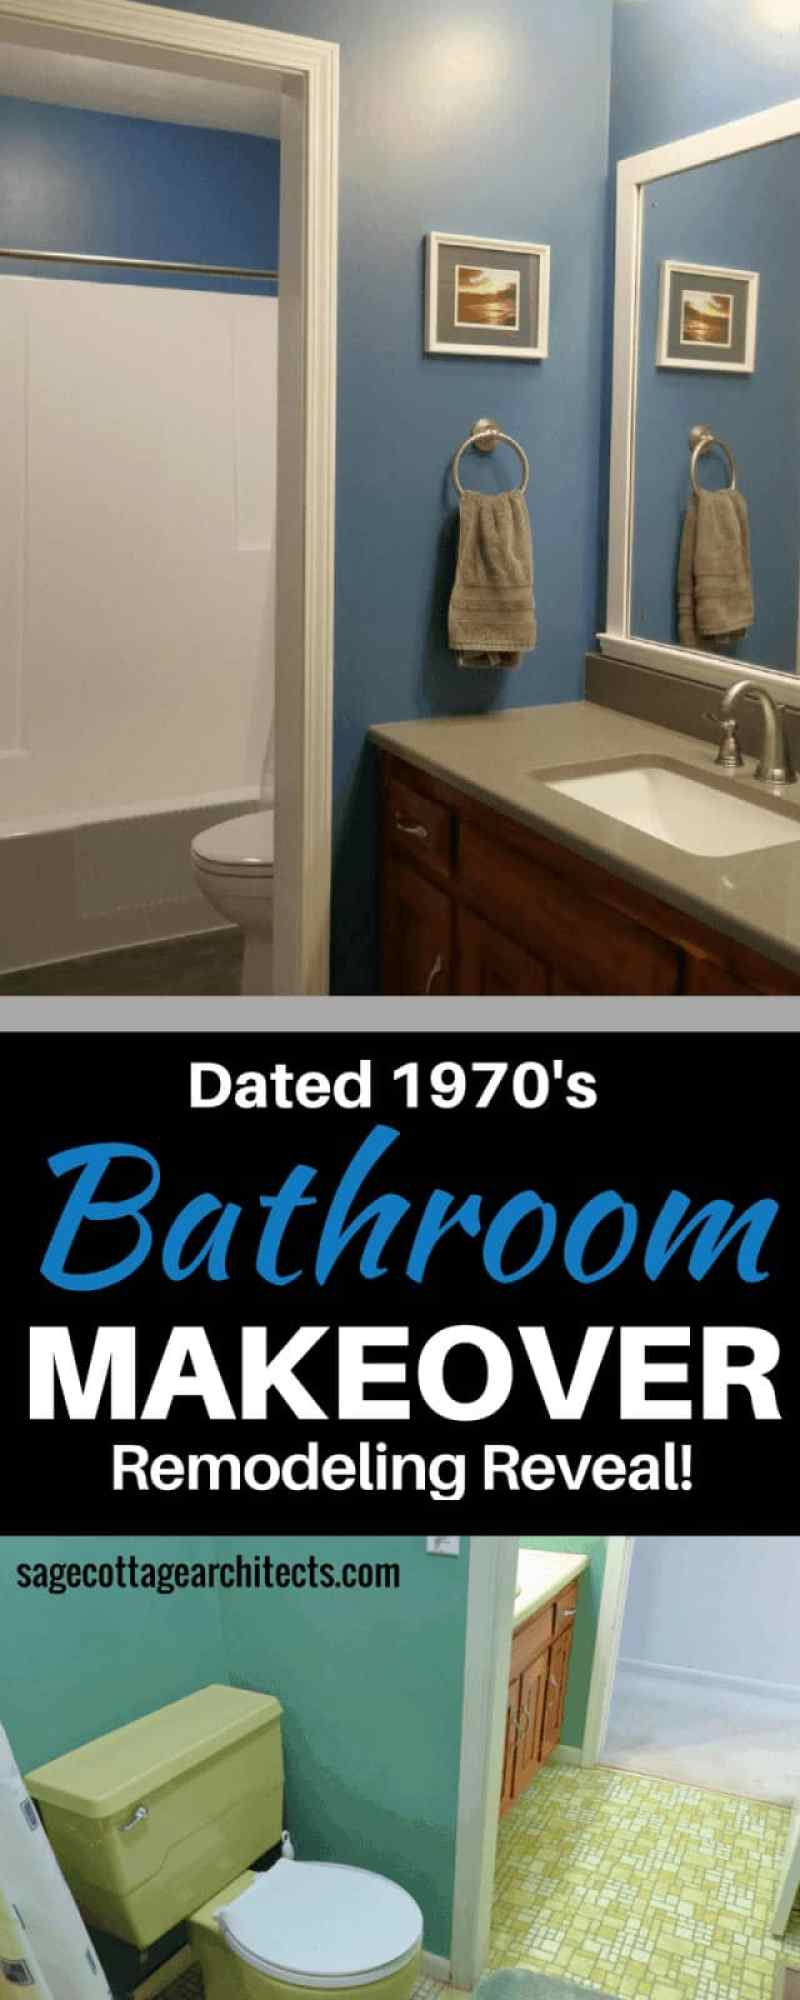 Photo collage - 1970's yellow bathroom remodel transformed into modern, dark blue and grey bathroom